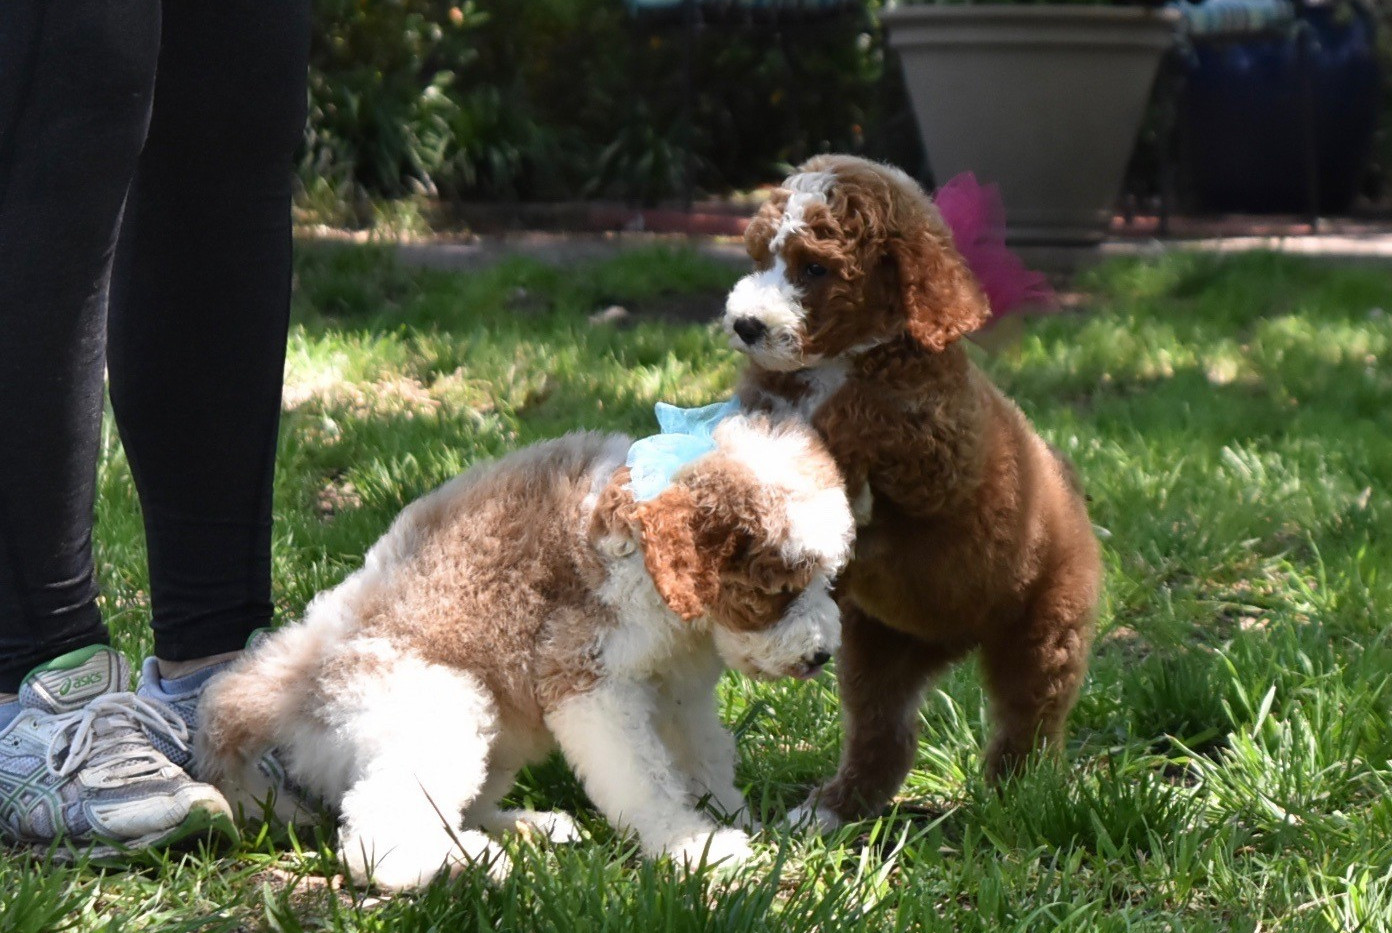 Poodle Puppy from previous litter